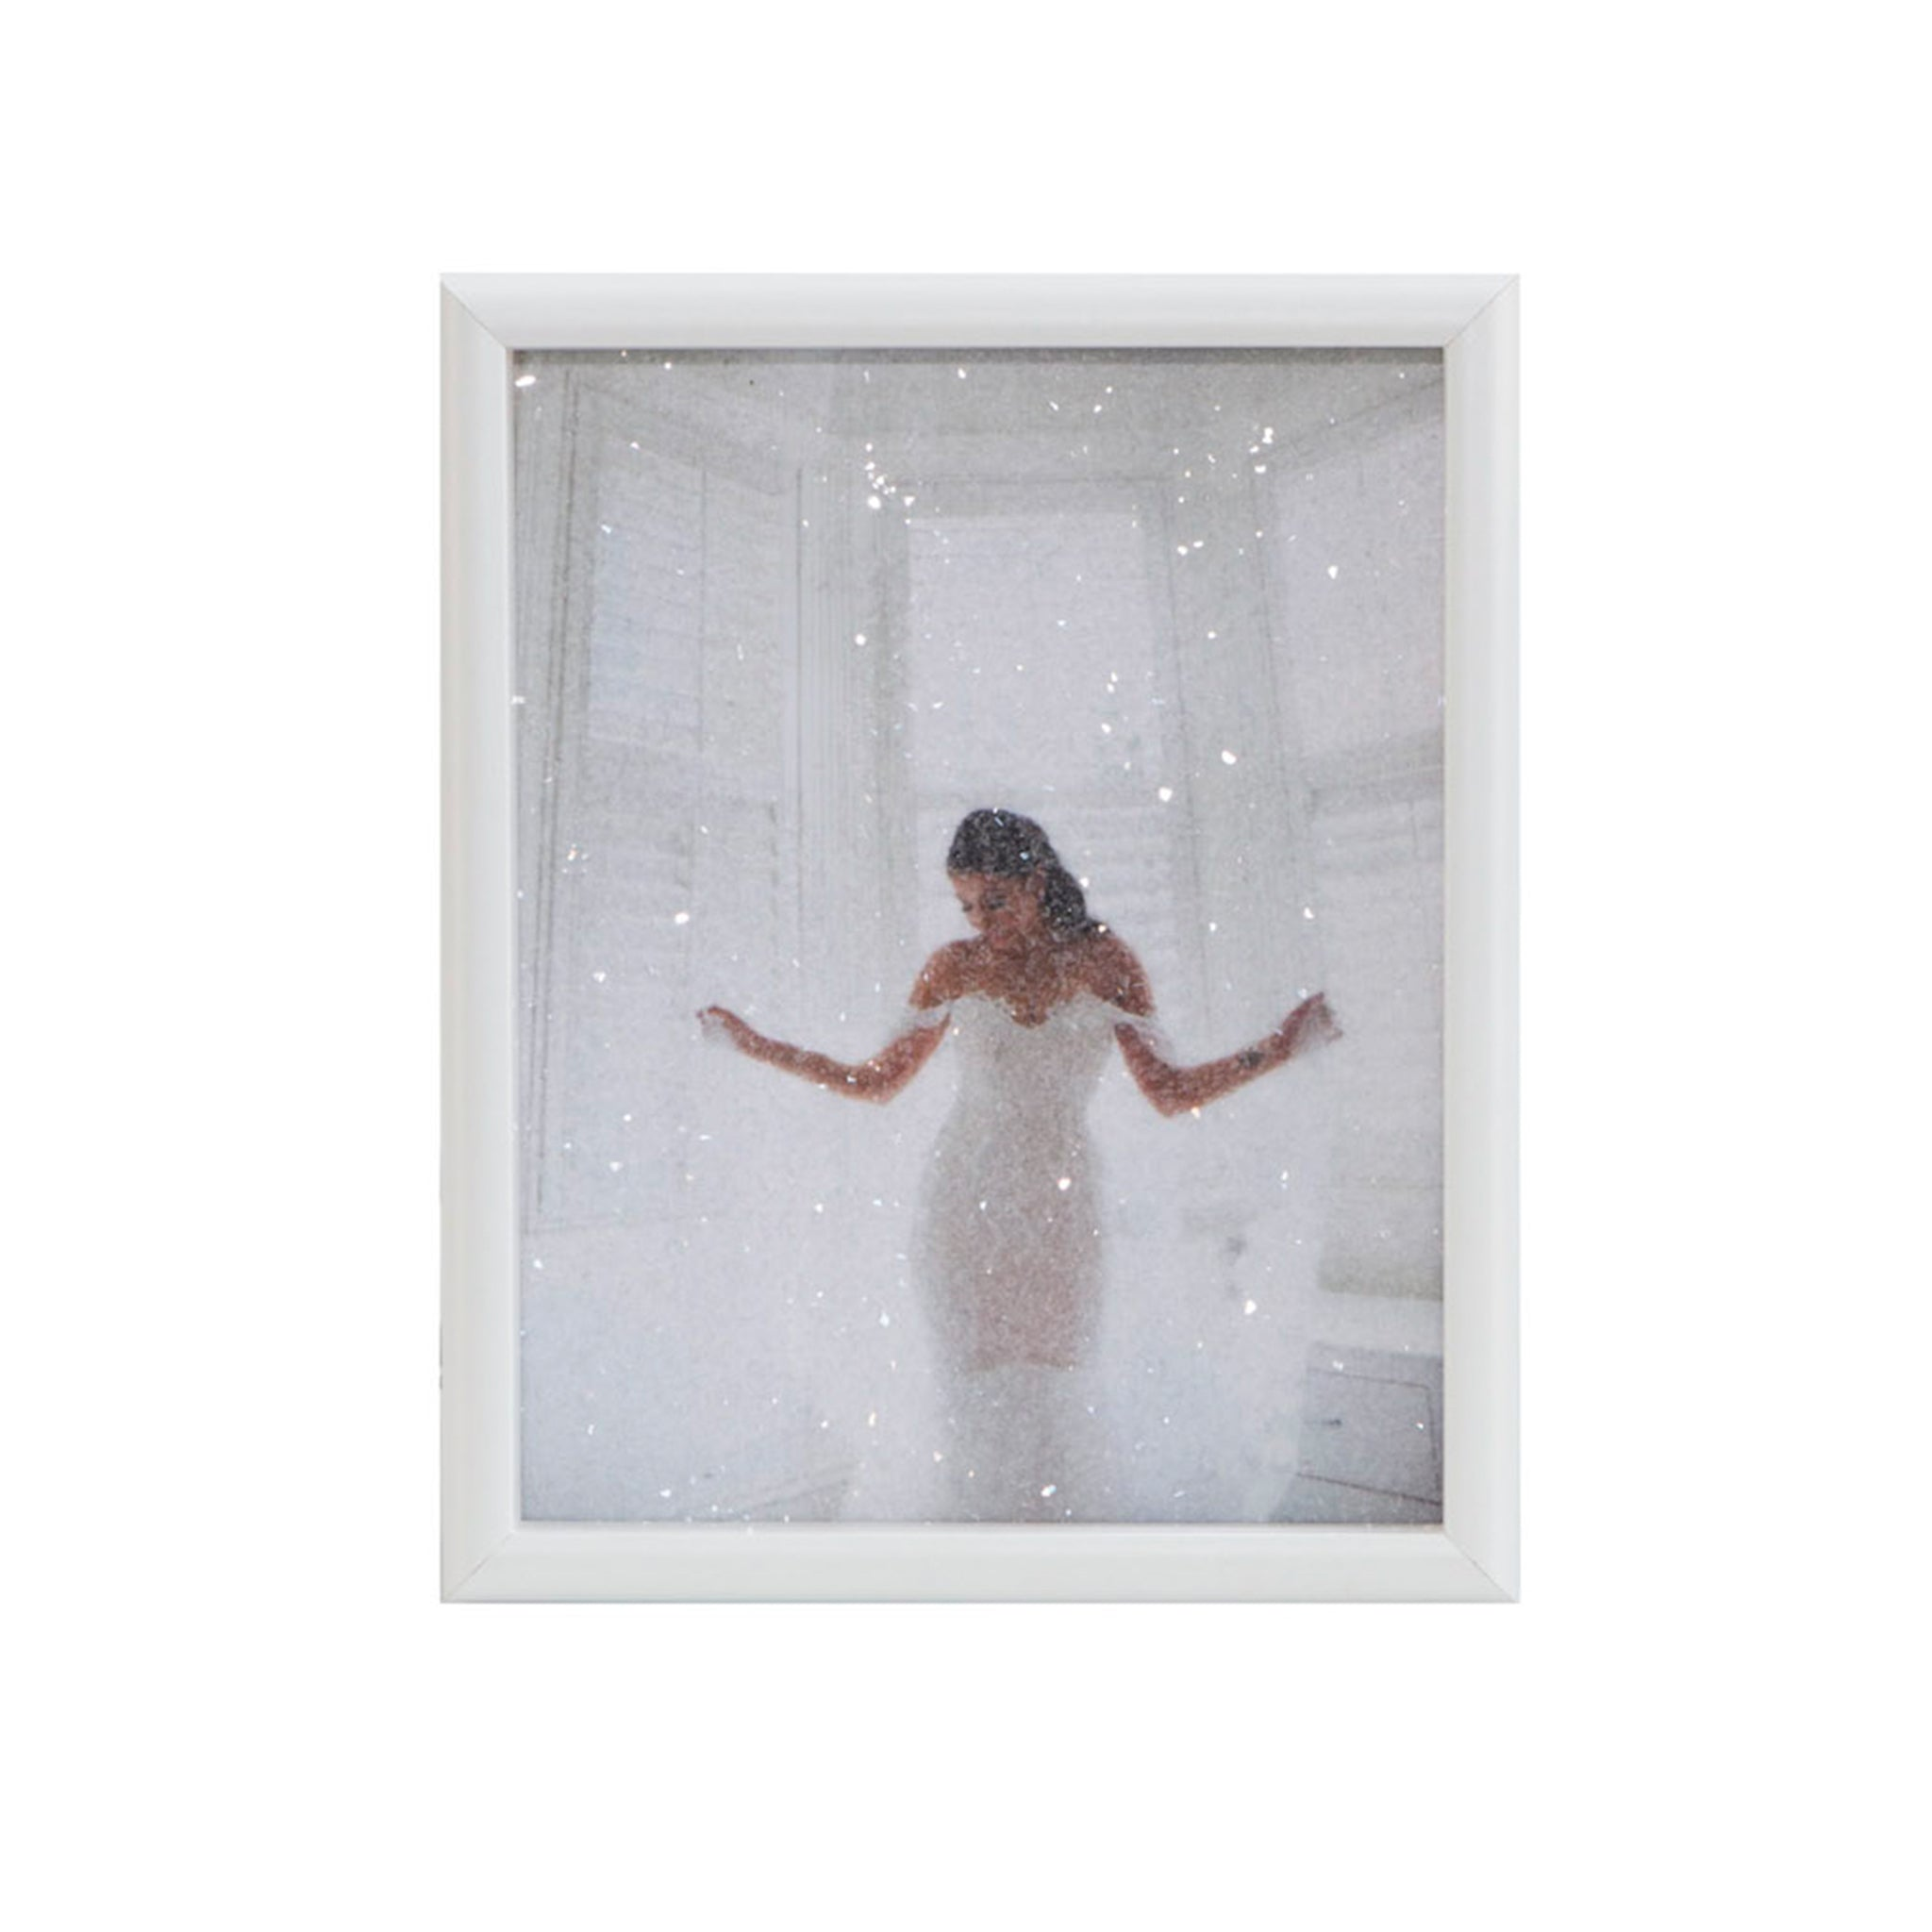 8x10 Diamond Dusted Photo